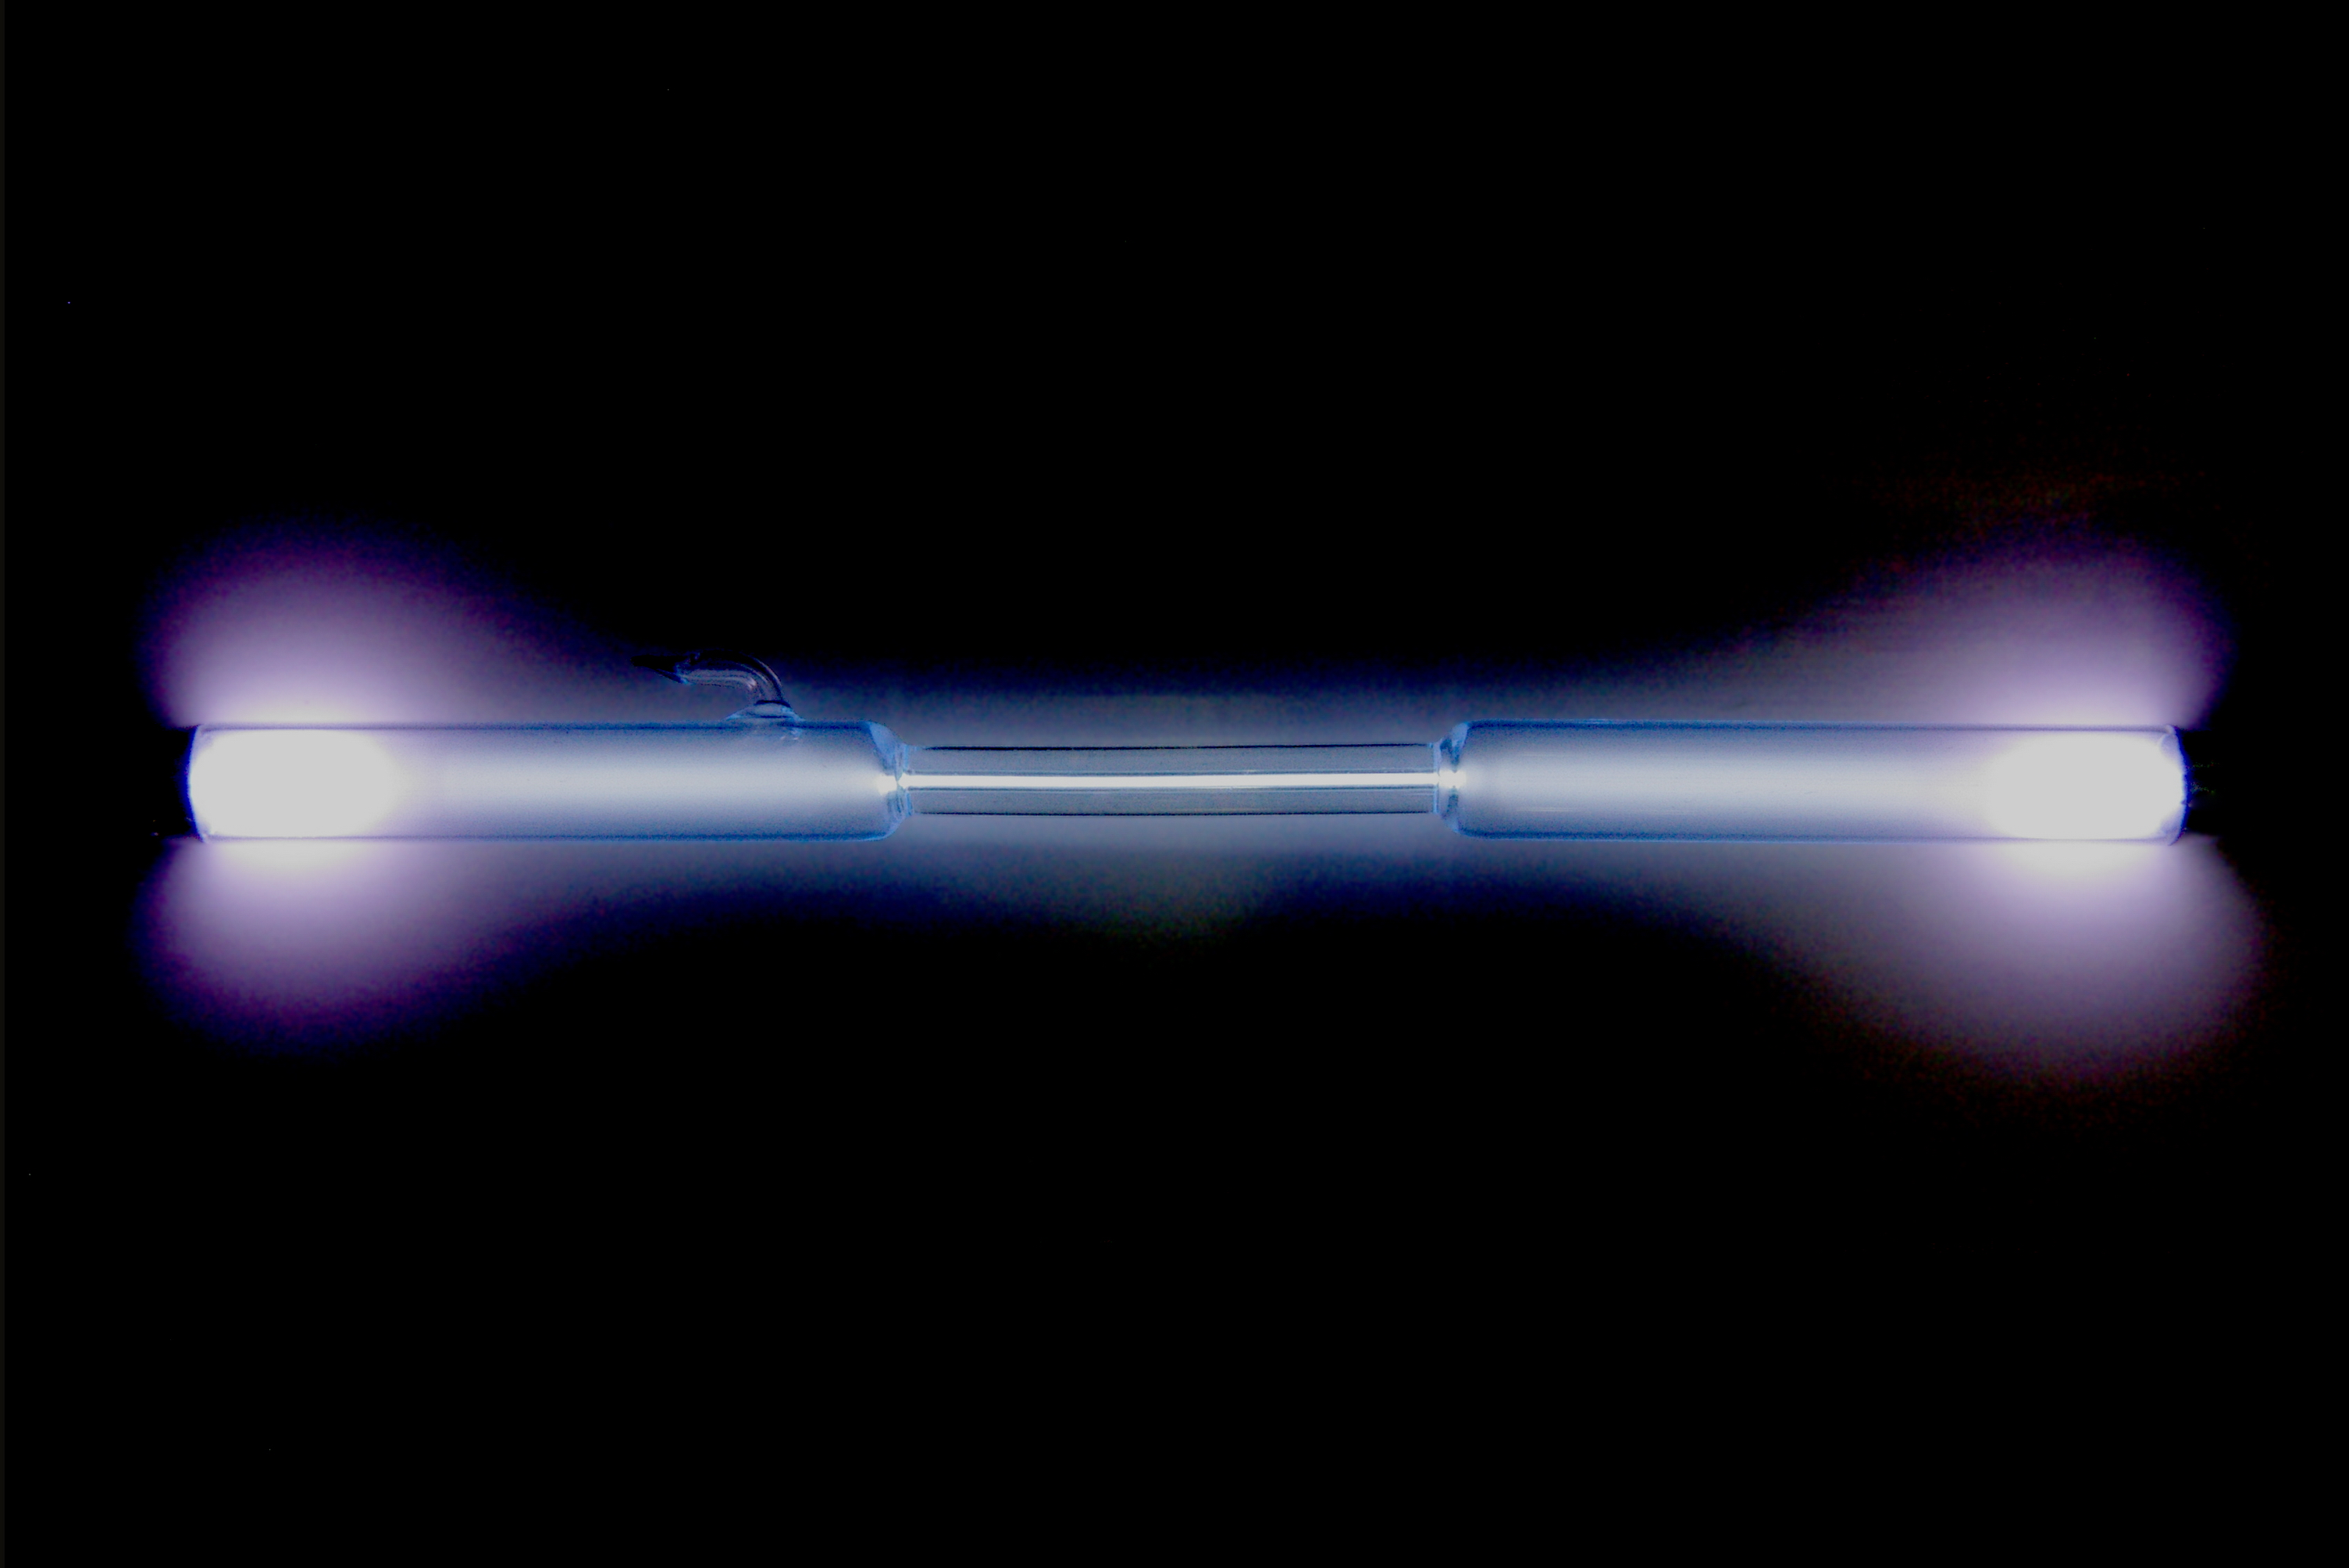 noble gases essay Get information, facts, and pictures about noble gases at encyclopediacom make research projects and school reports about noble gases easy with credible articles.